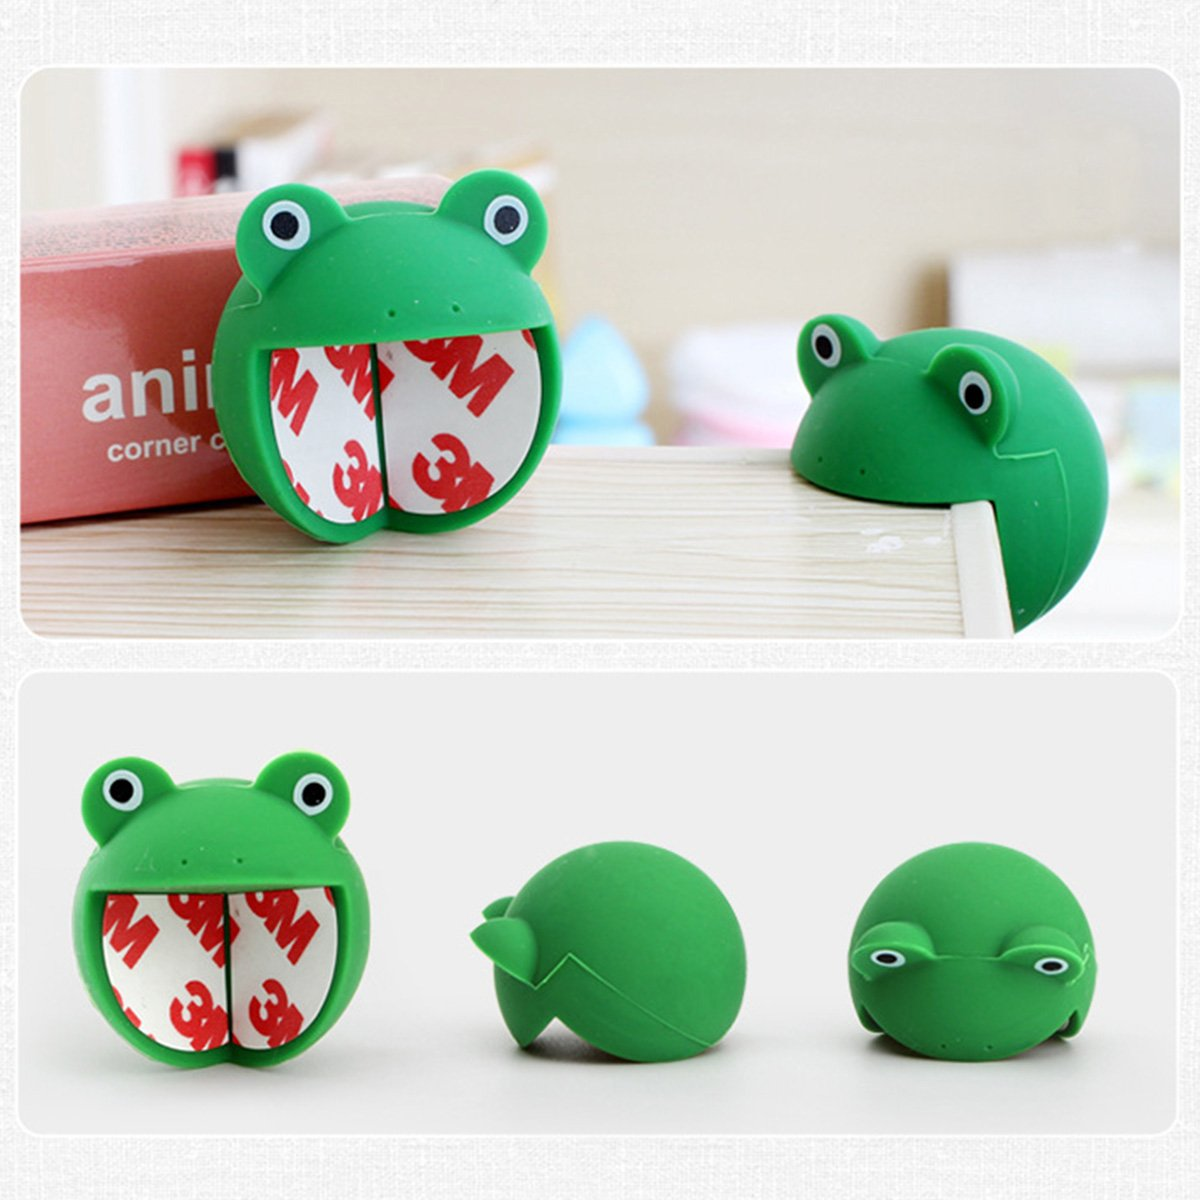 Sasairy Lot de 4 Pcs Prot/ège Coin de Table Forme en Animals Protections dAngles et Rebords pour Protection de B/éb/é Enfants